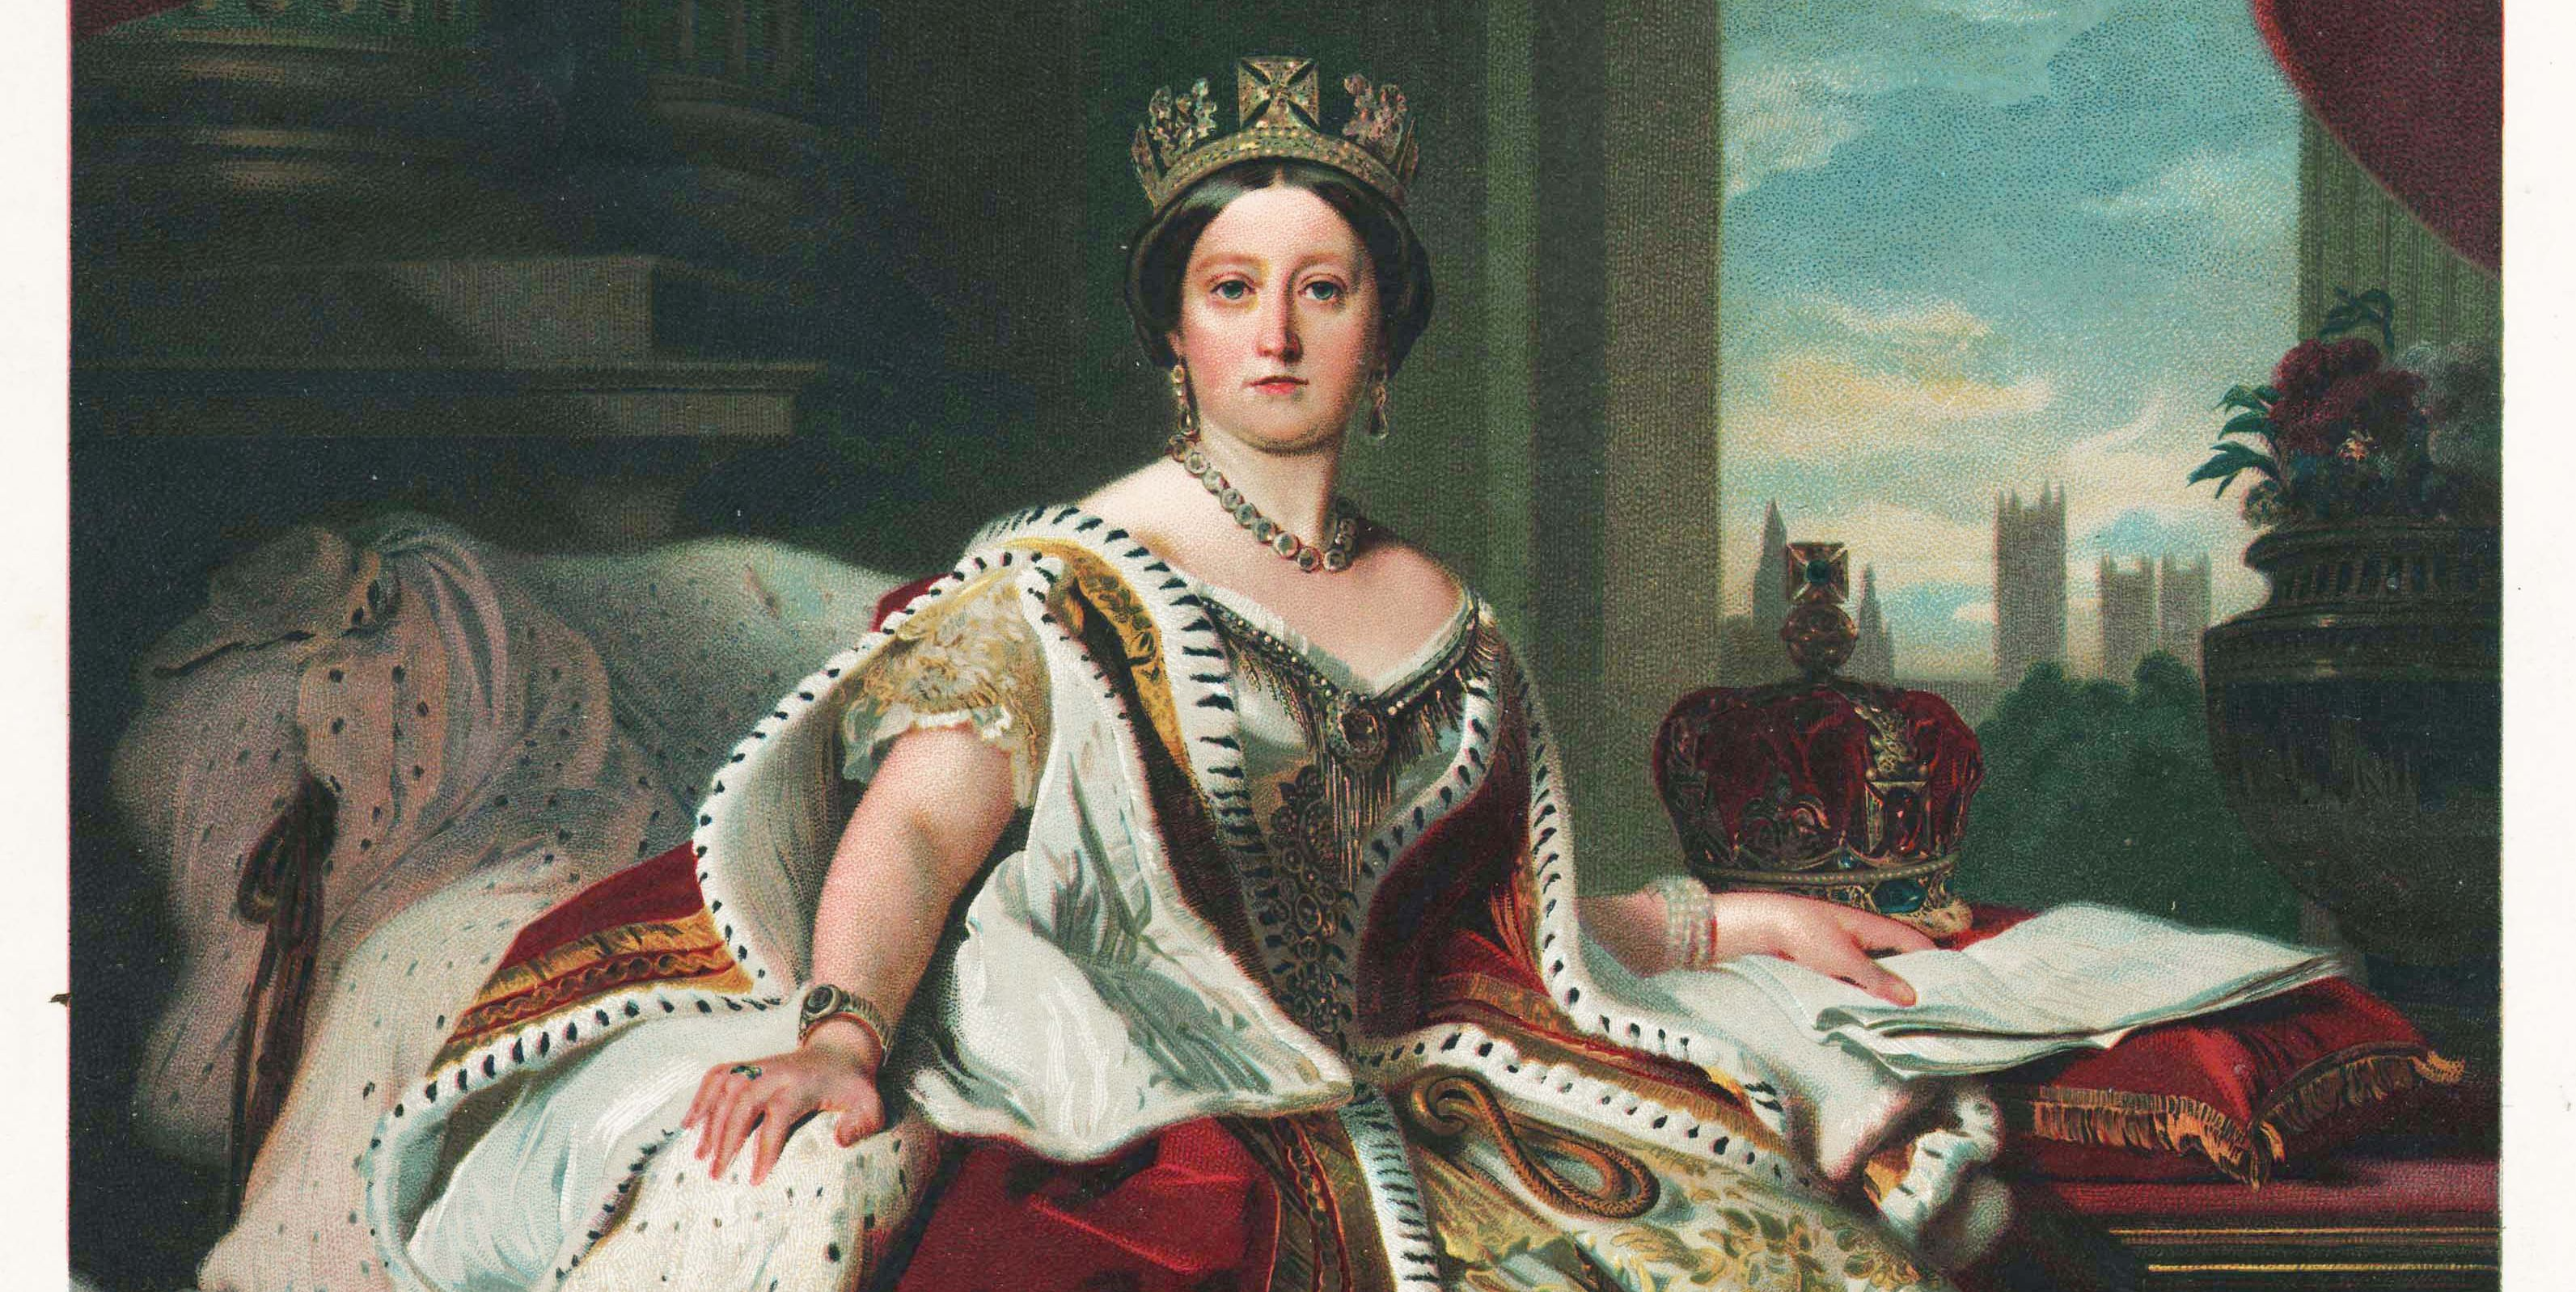 the life and reign of queen victoria Find queen victoria, her life and reign by hopkins, j castell at biblio uncommonly good collectible and rare books from uncommonly good booksellers.